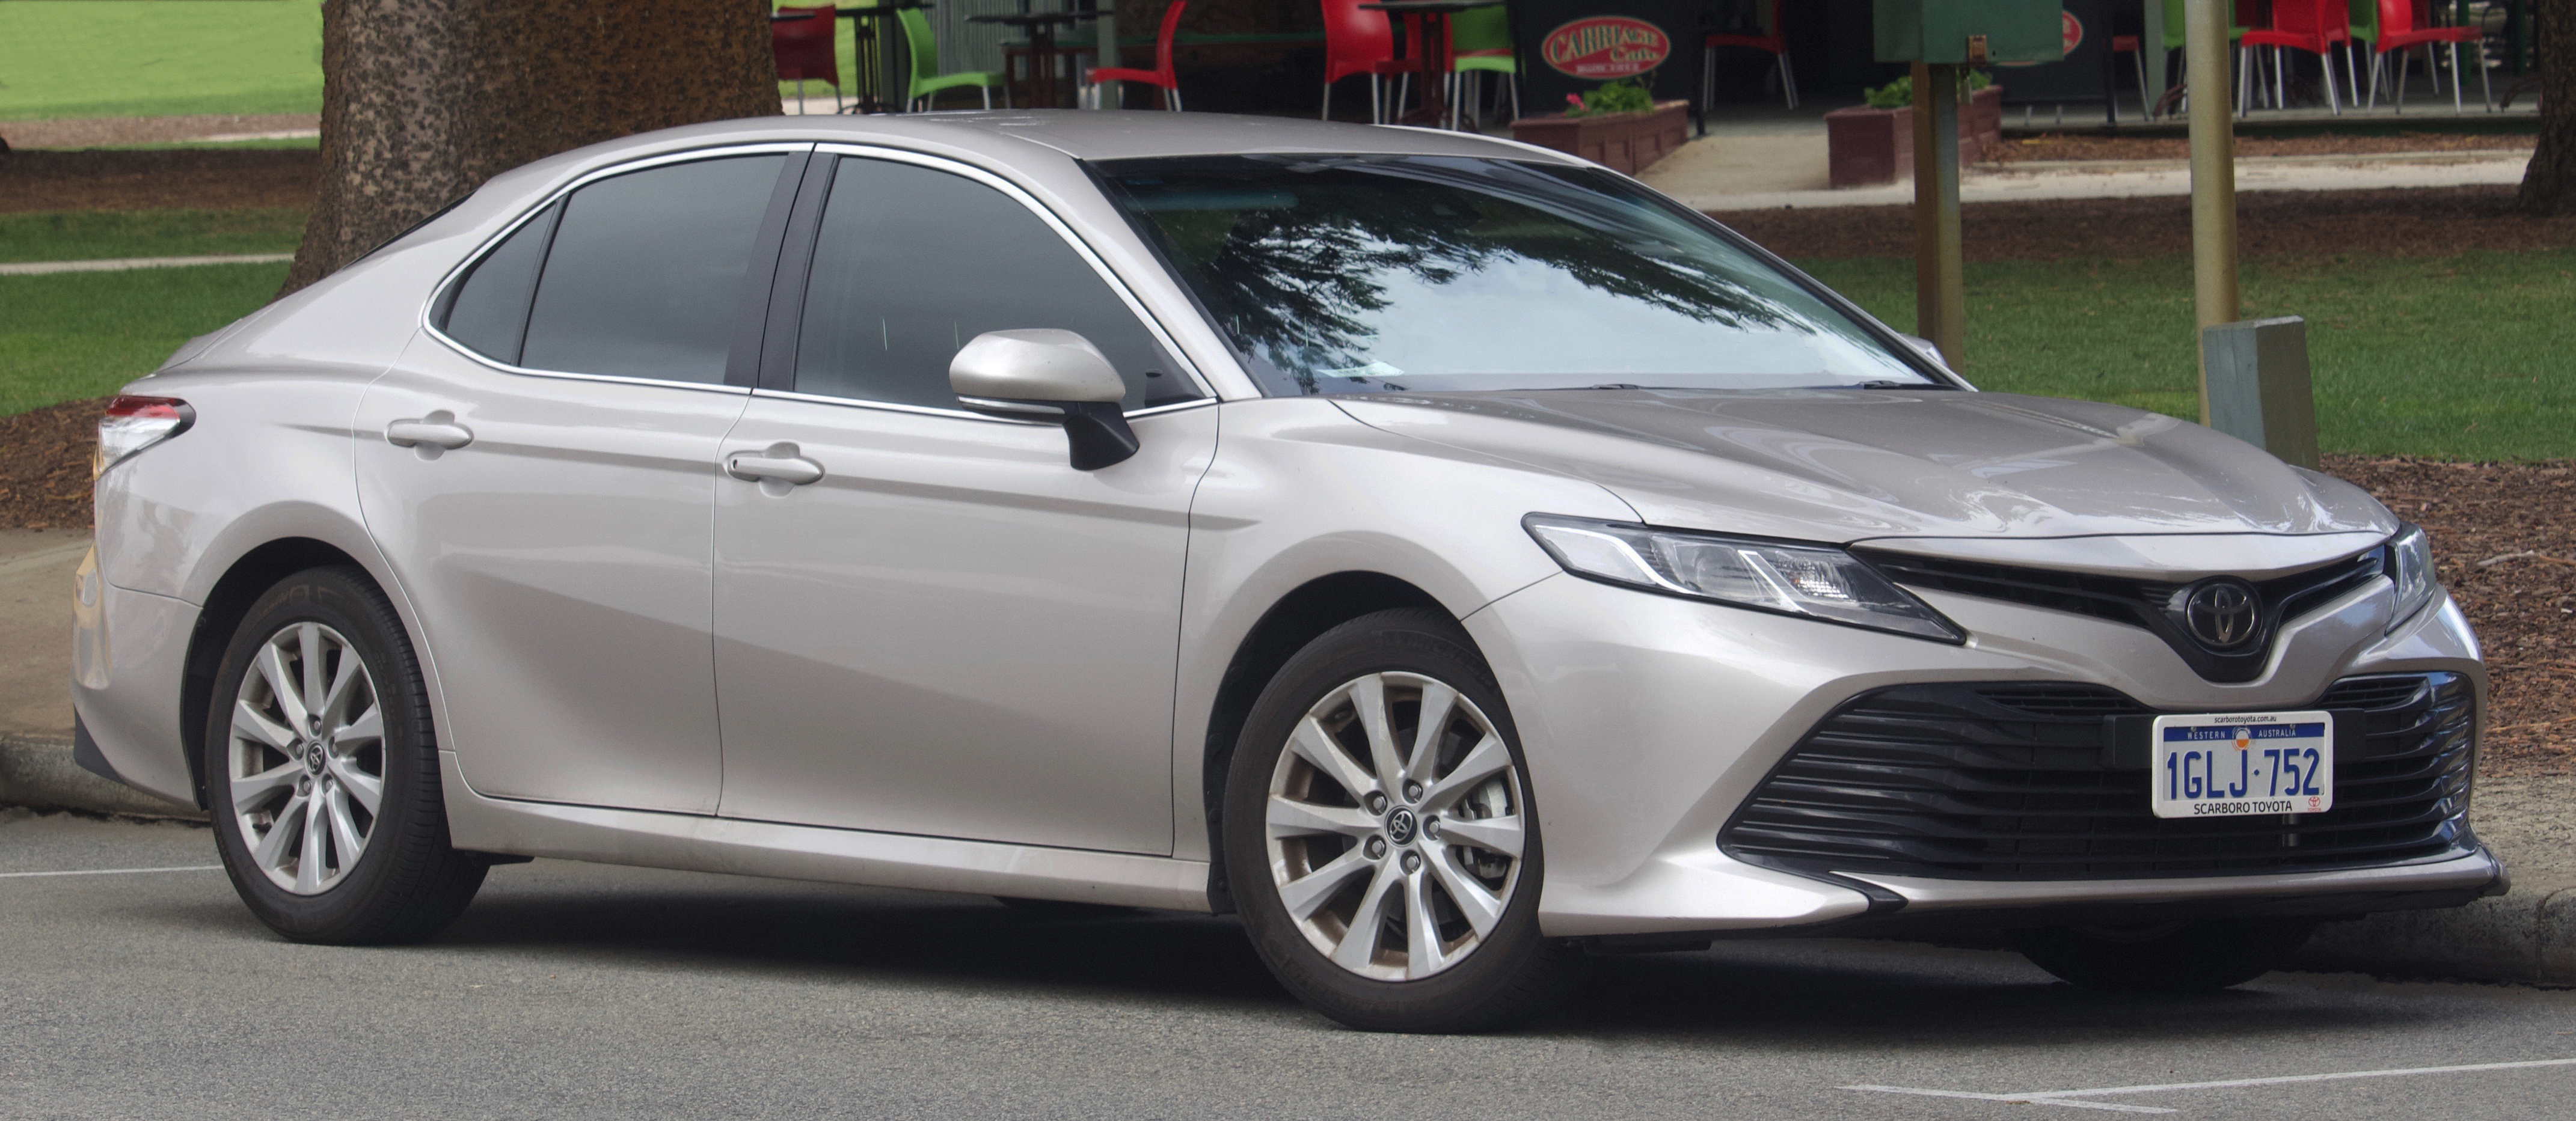 first model toyota camry